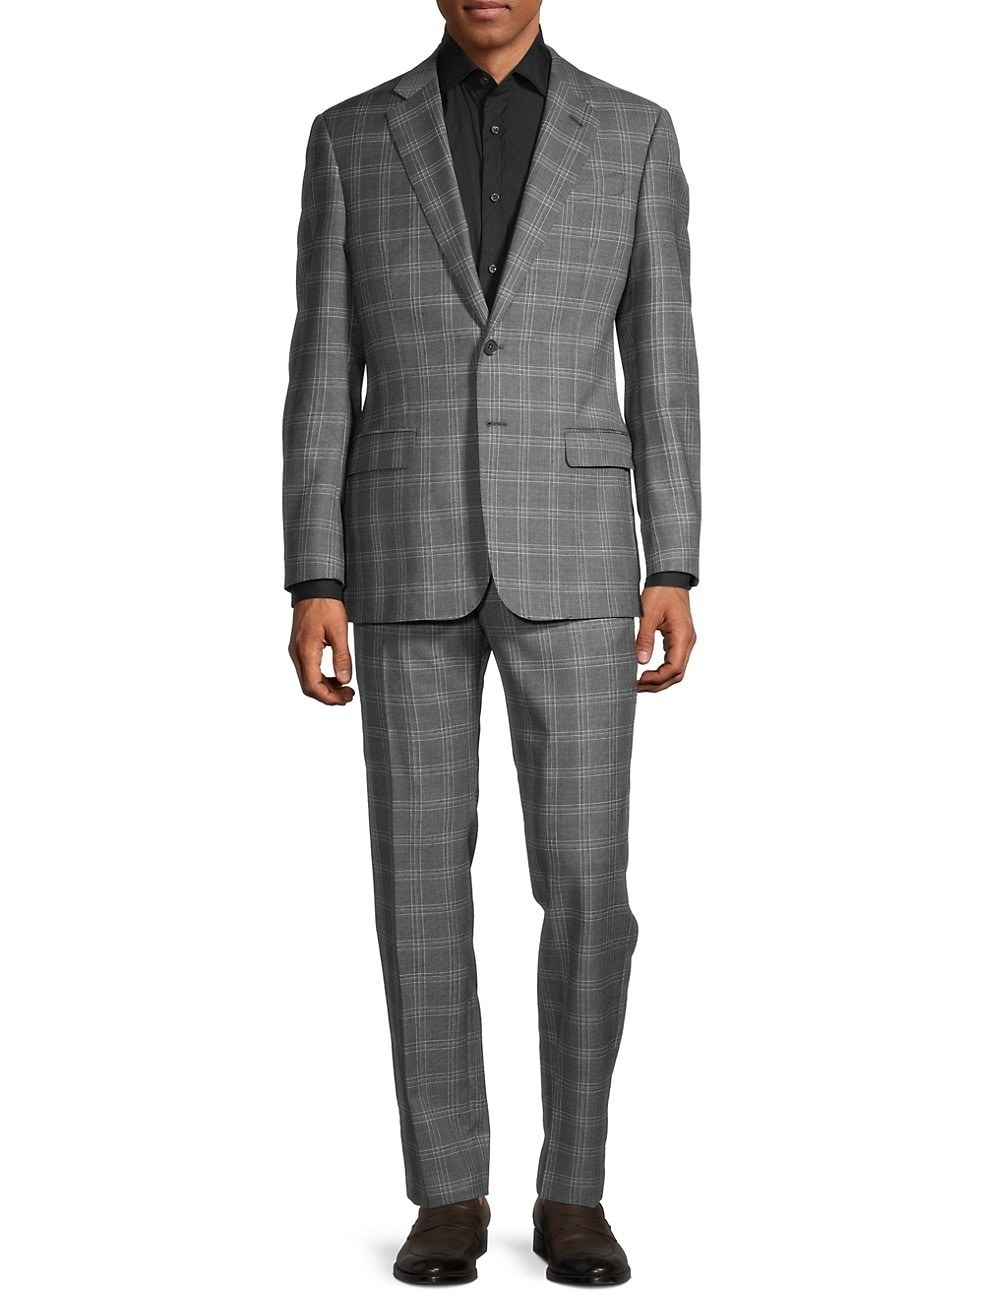 A model in the grey plaid suit